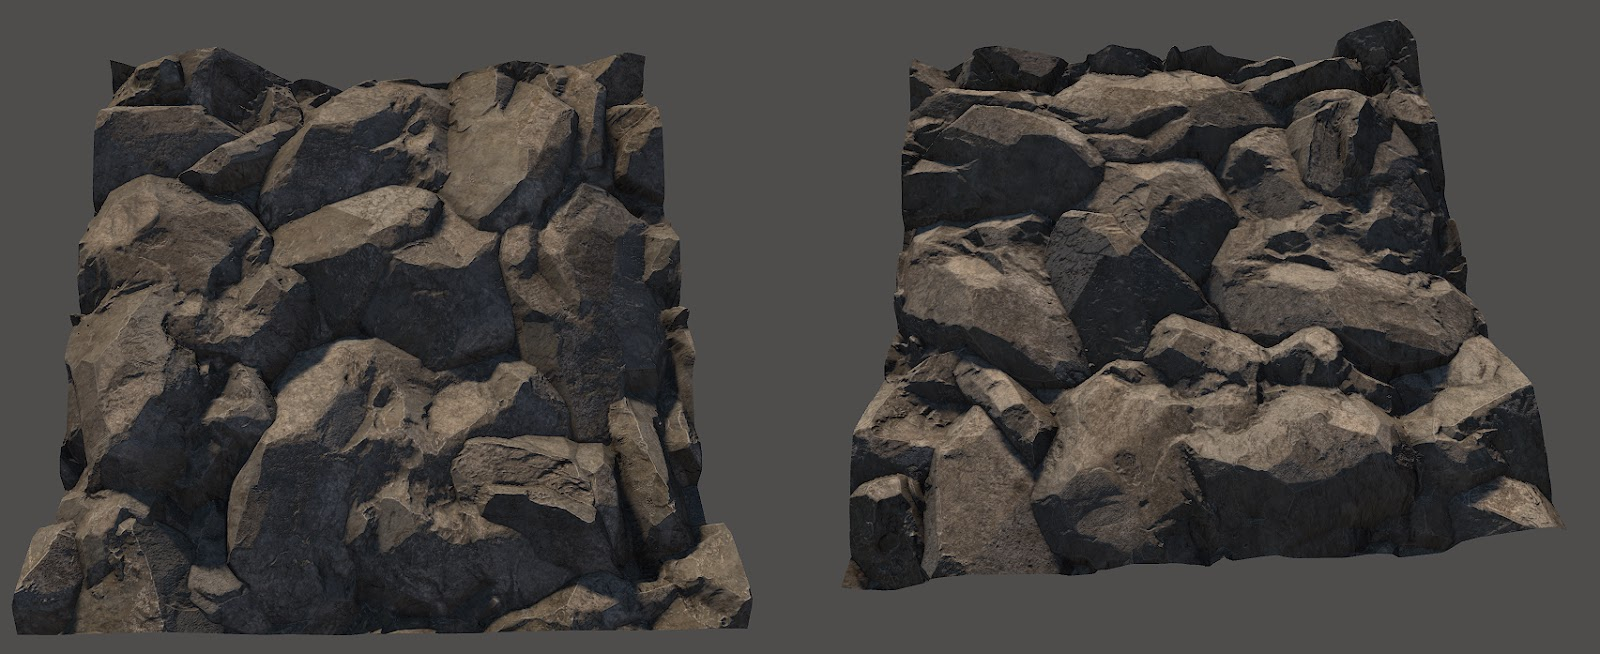 tileable_rock_B.jpg